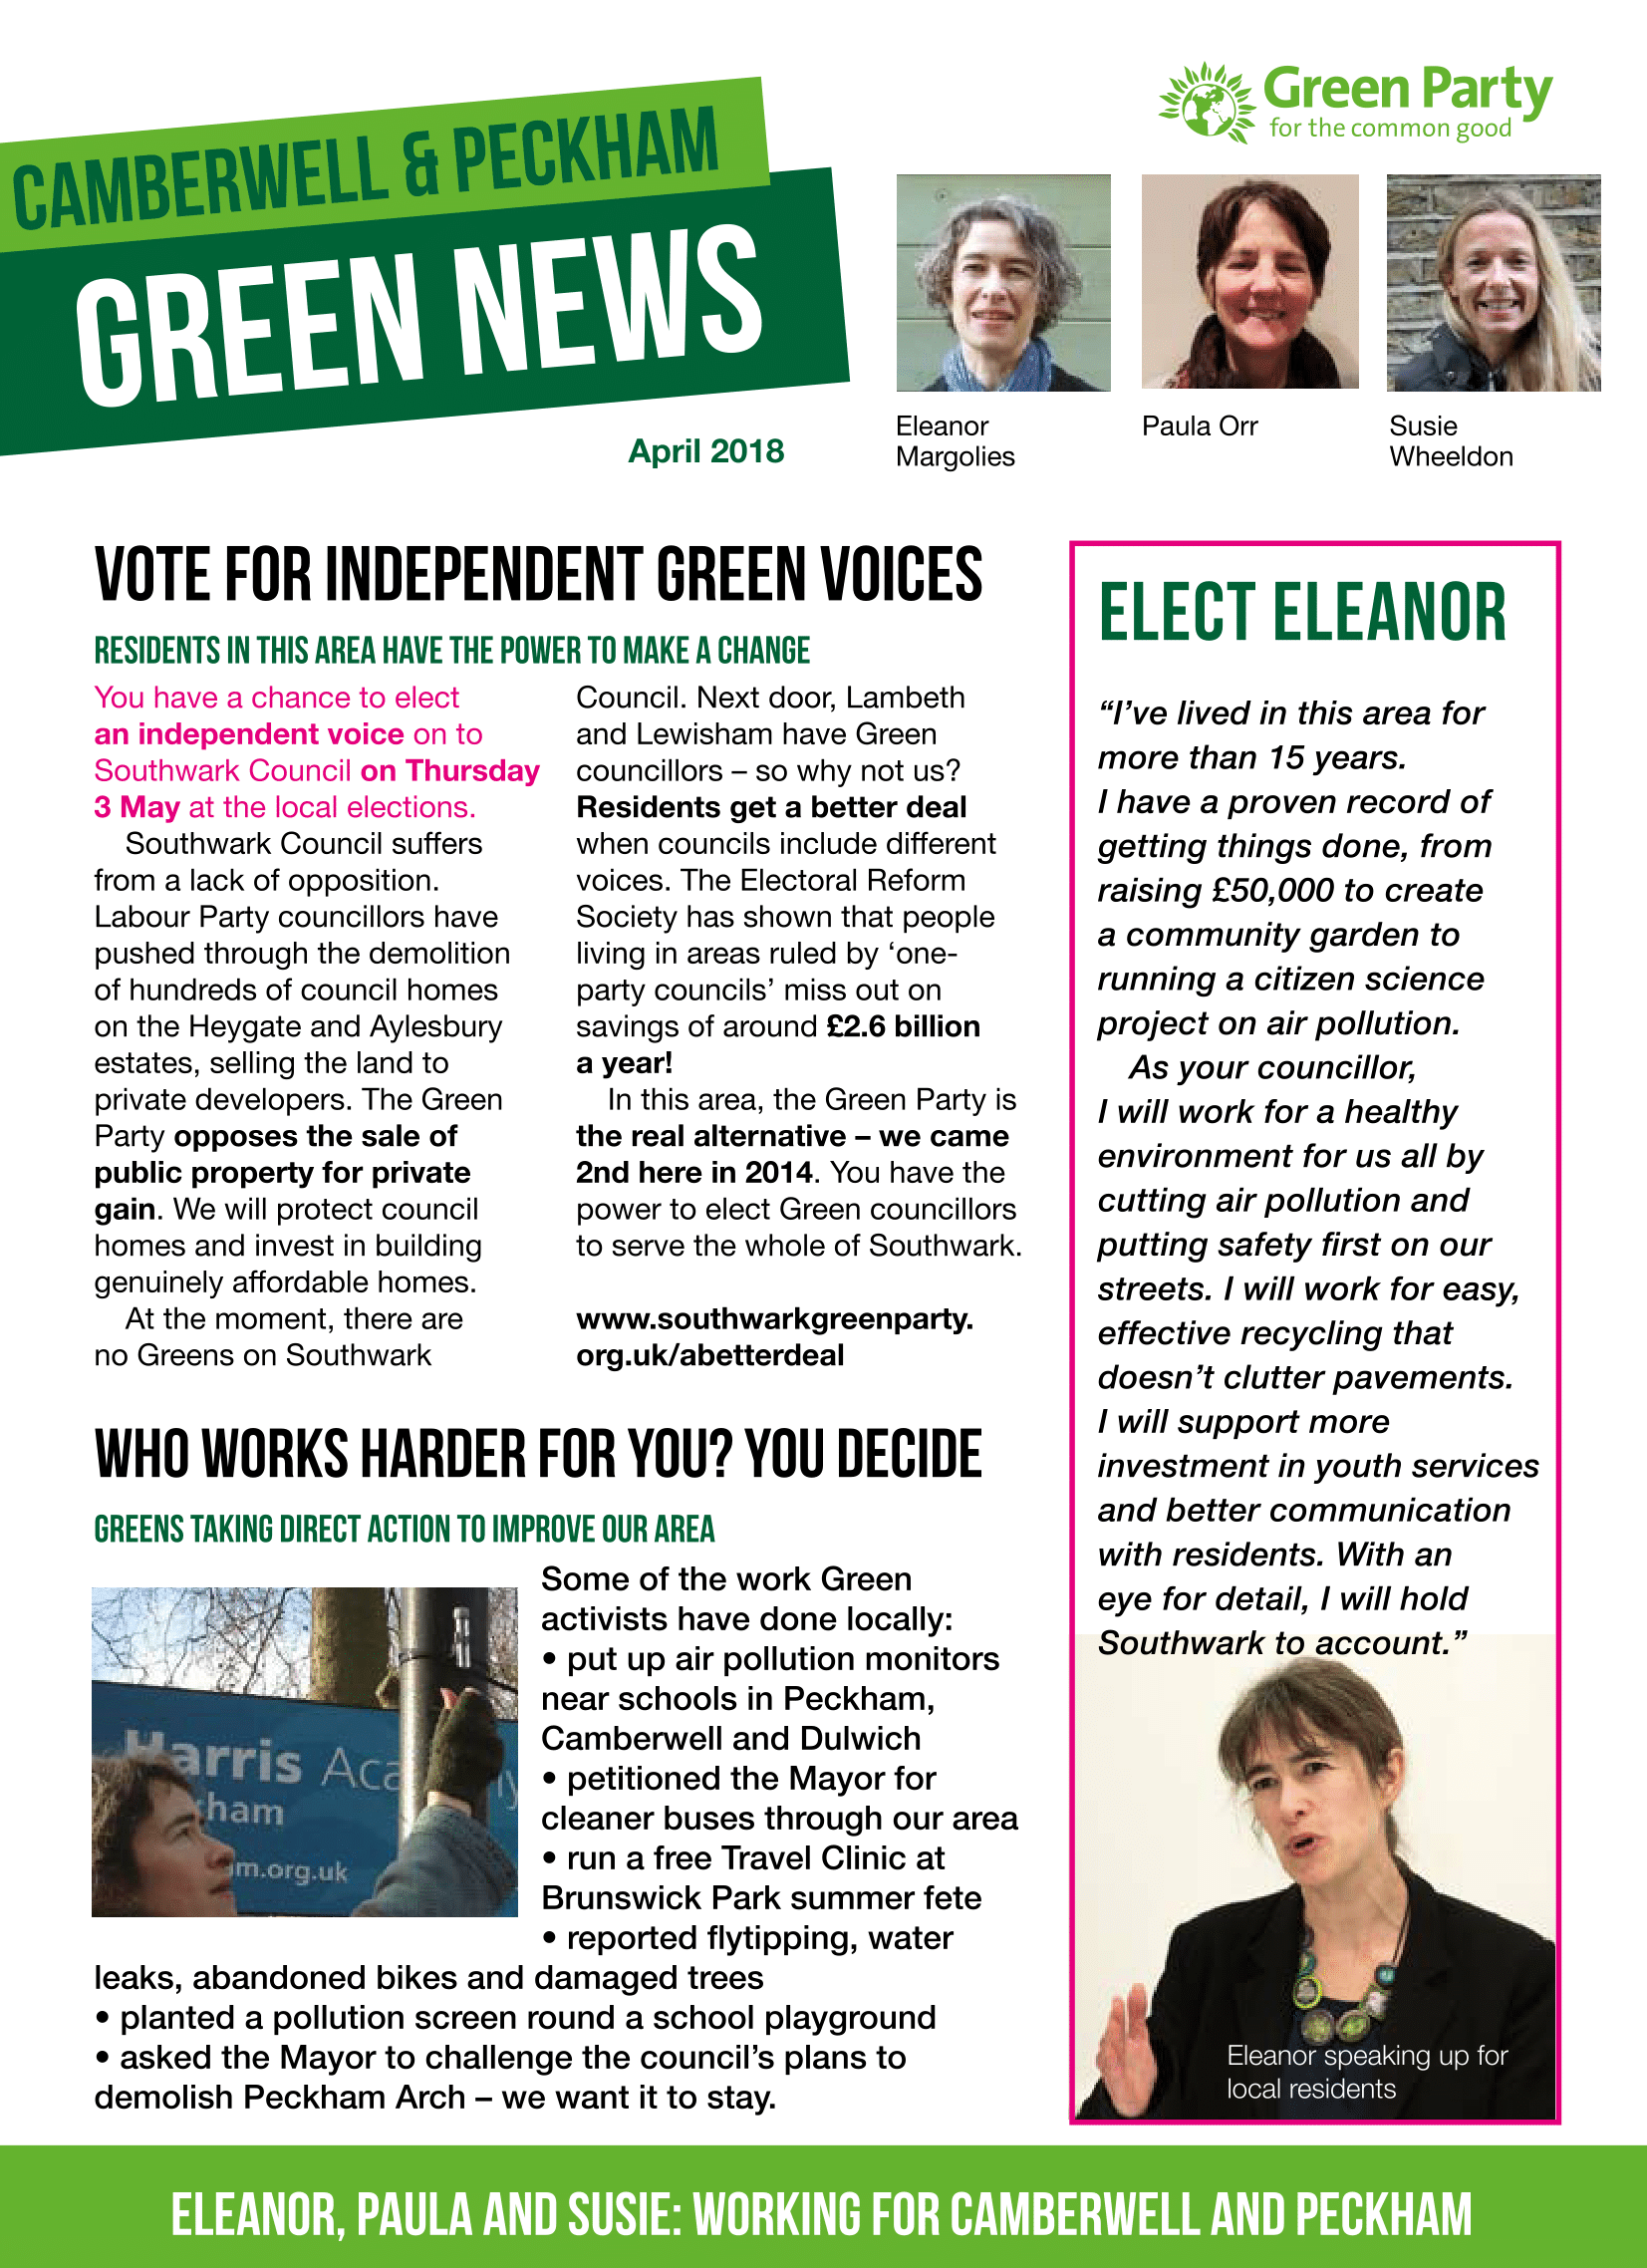 Camberwell & Peckham Green News - April 2018